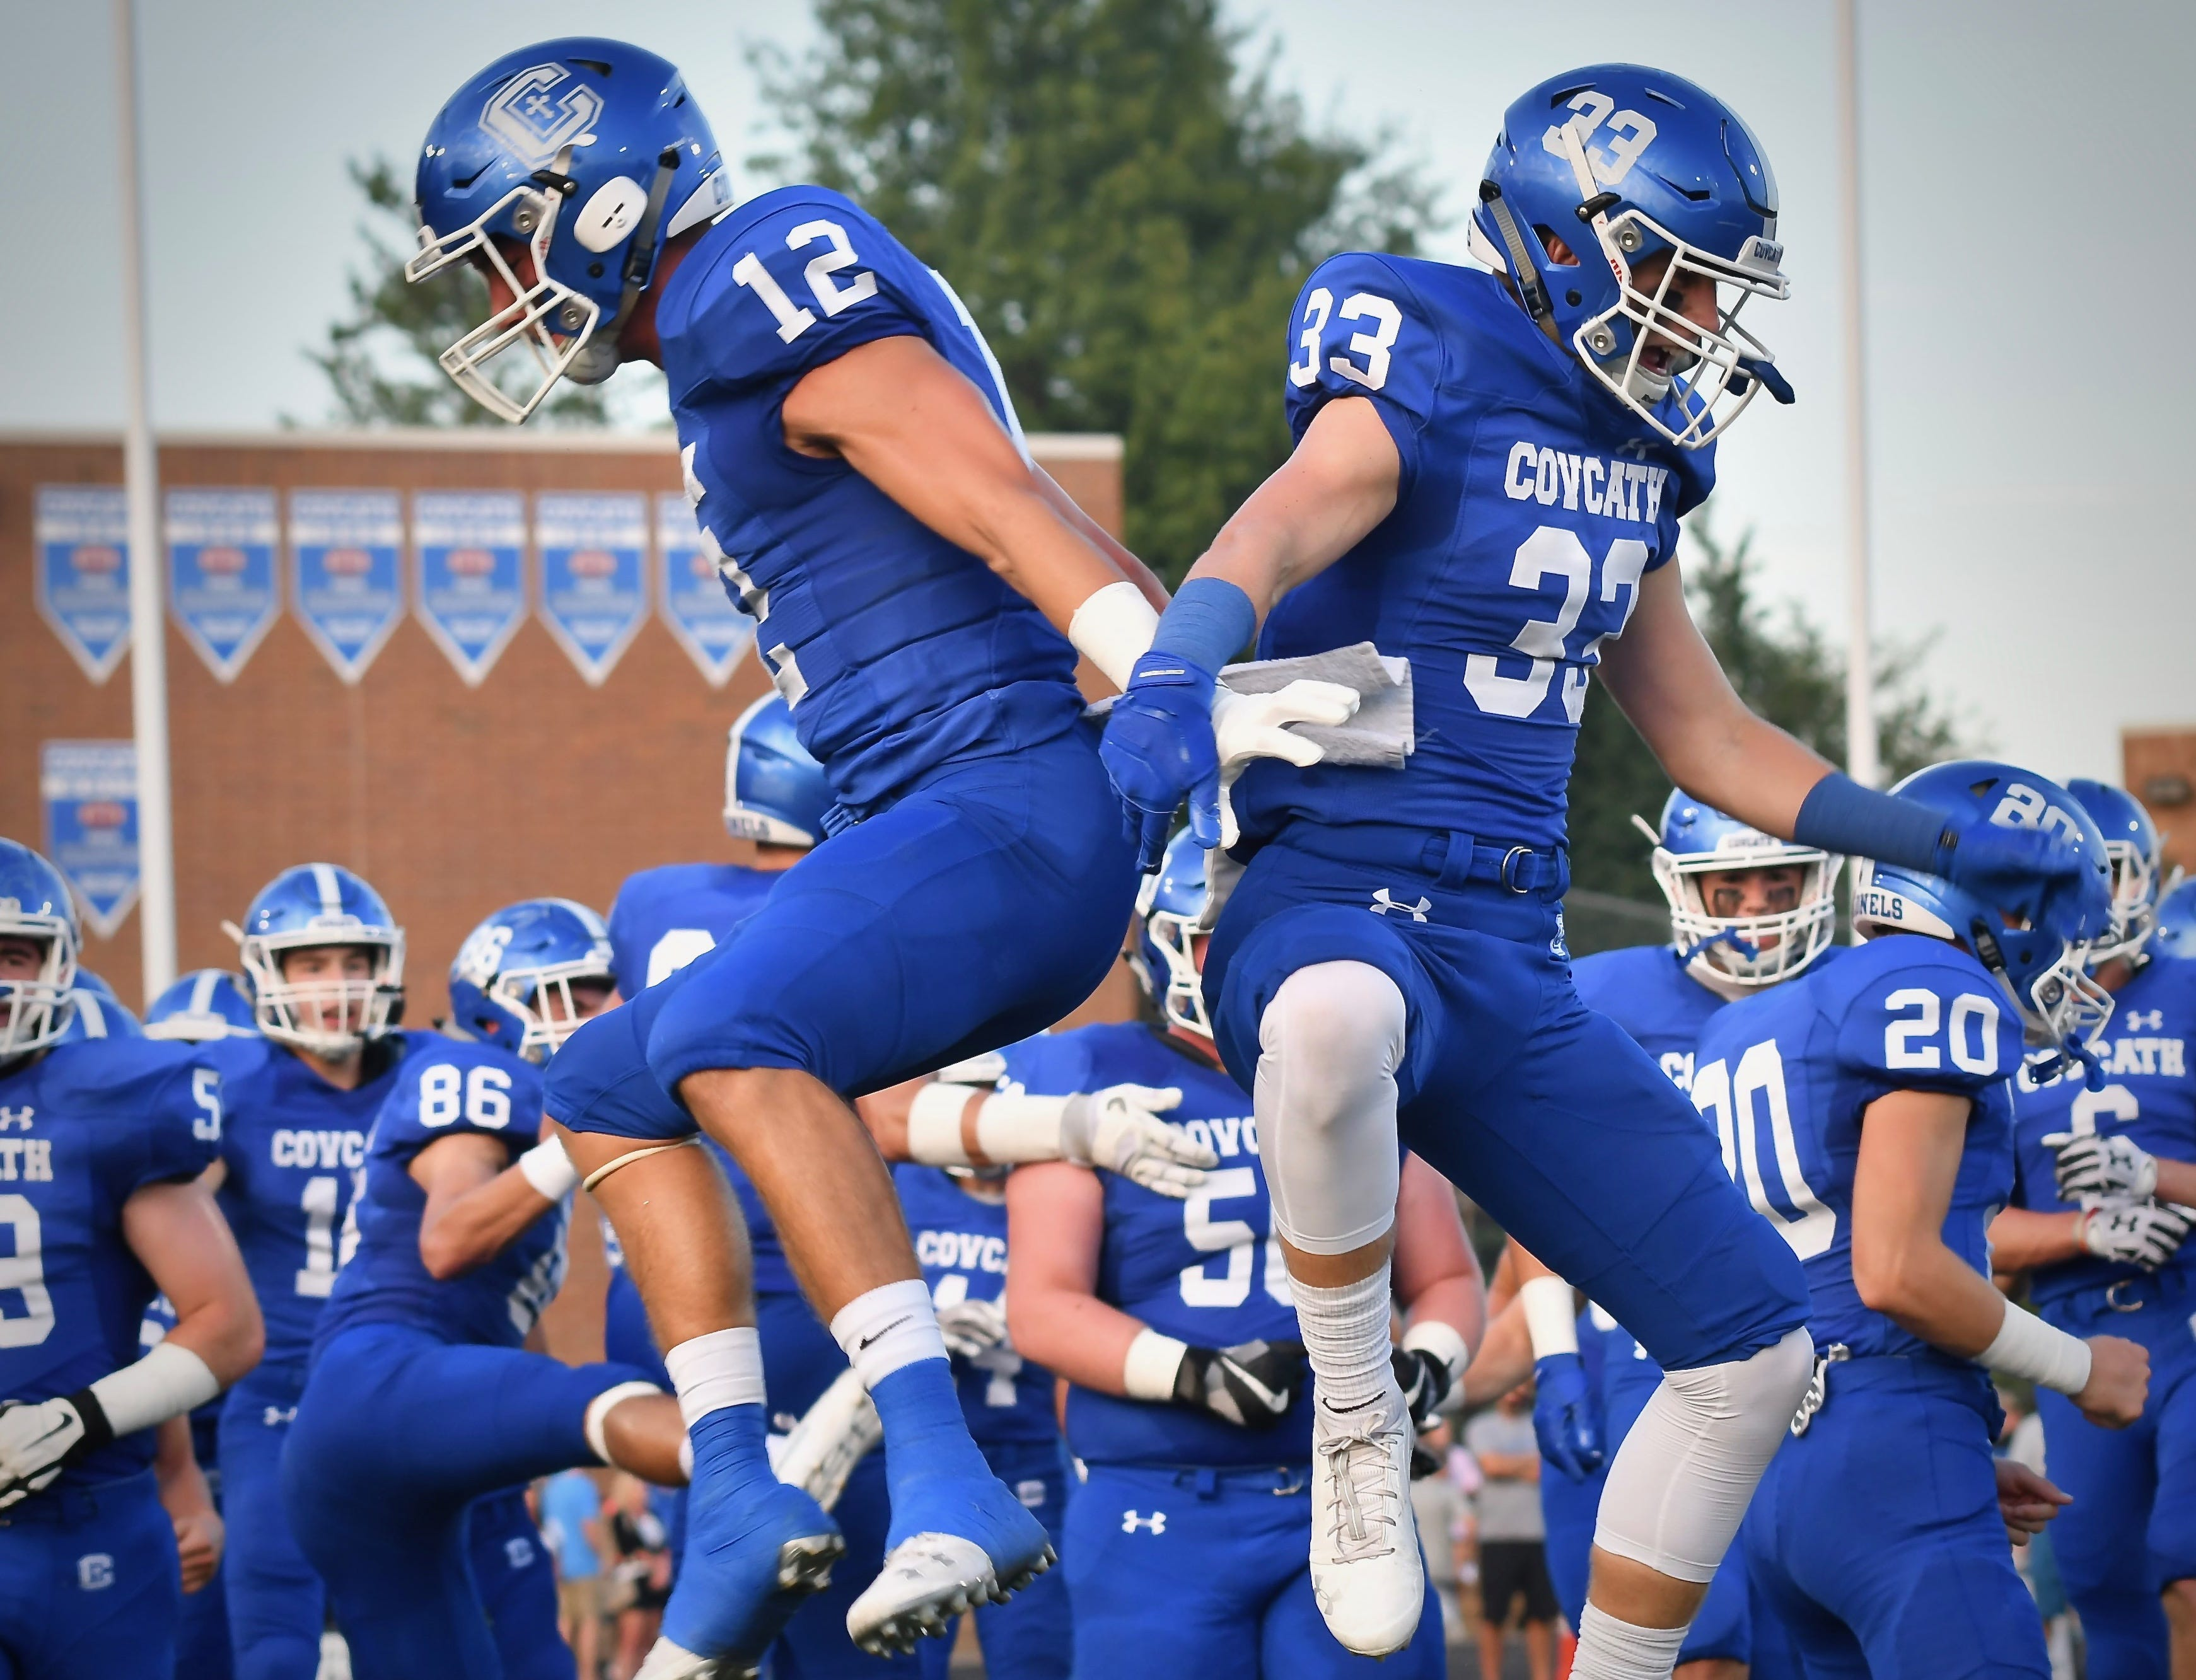 The Covington Catholic Colonels take the field Friday, Sept. 14, 2018 at Ursuline Academy